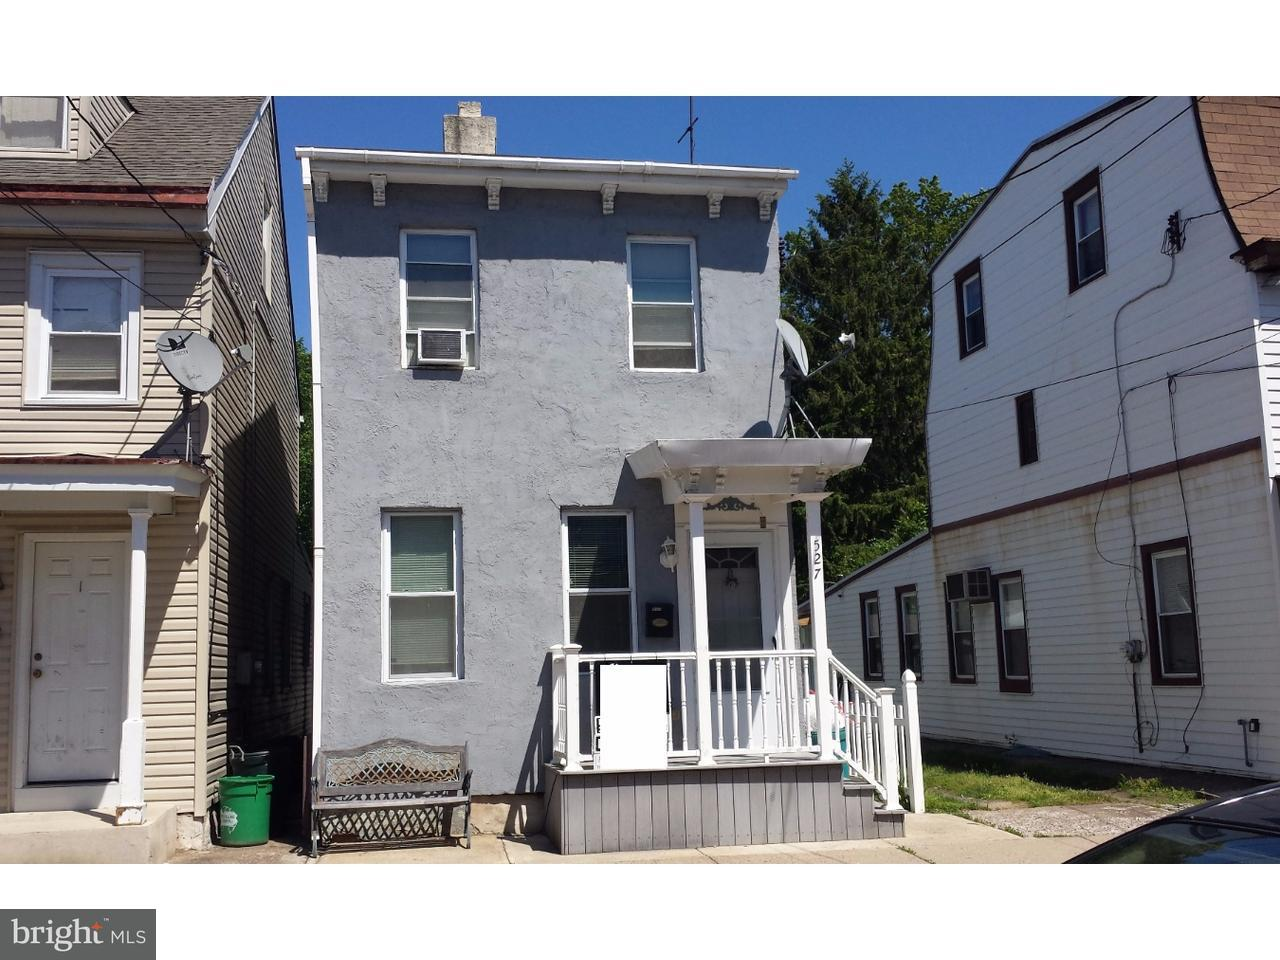 Single Family Home for Rent at 527 SWAIN Street Bristol, Pennsylvania 19007 United States